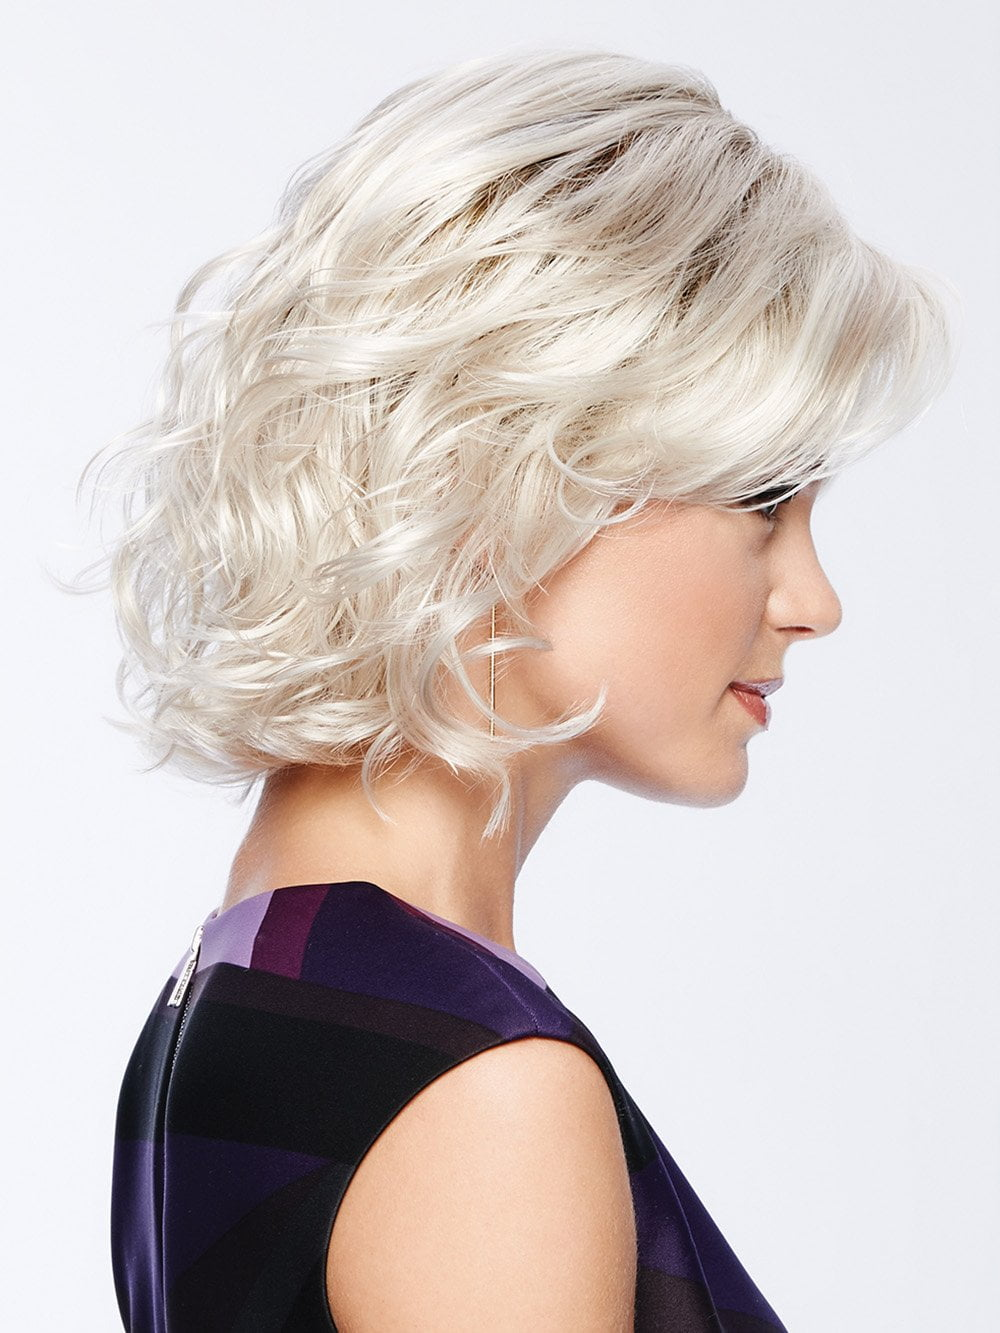 A classic wig, beautiful modernized bob with textured waves